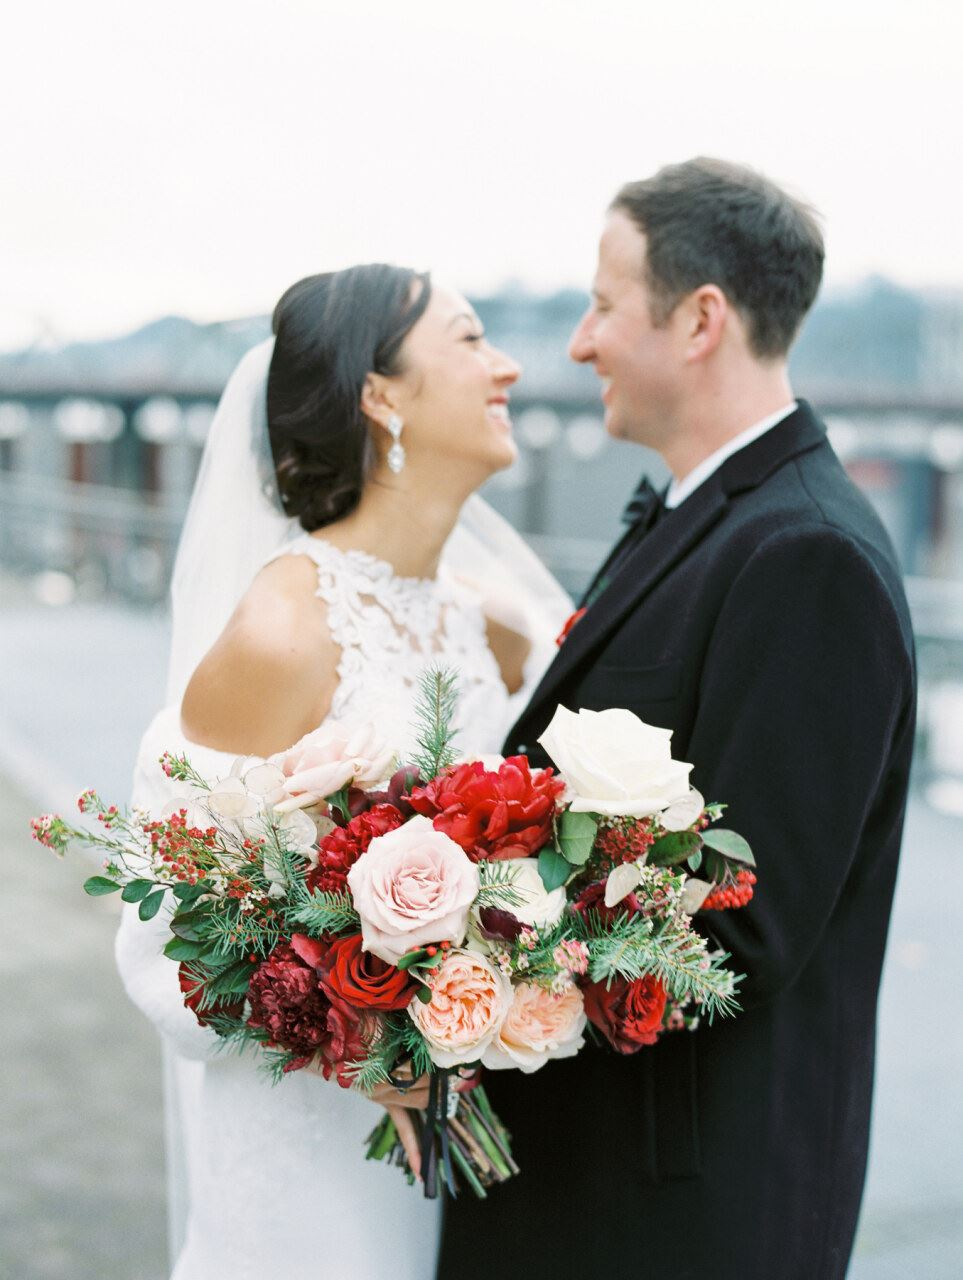 Bride and groom smiling with floral bouquet